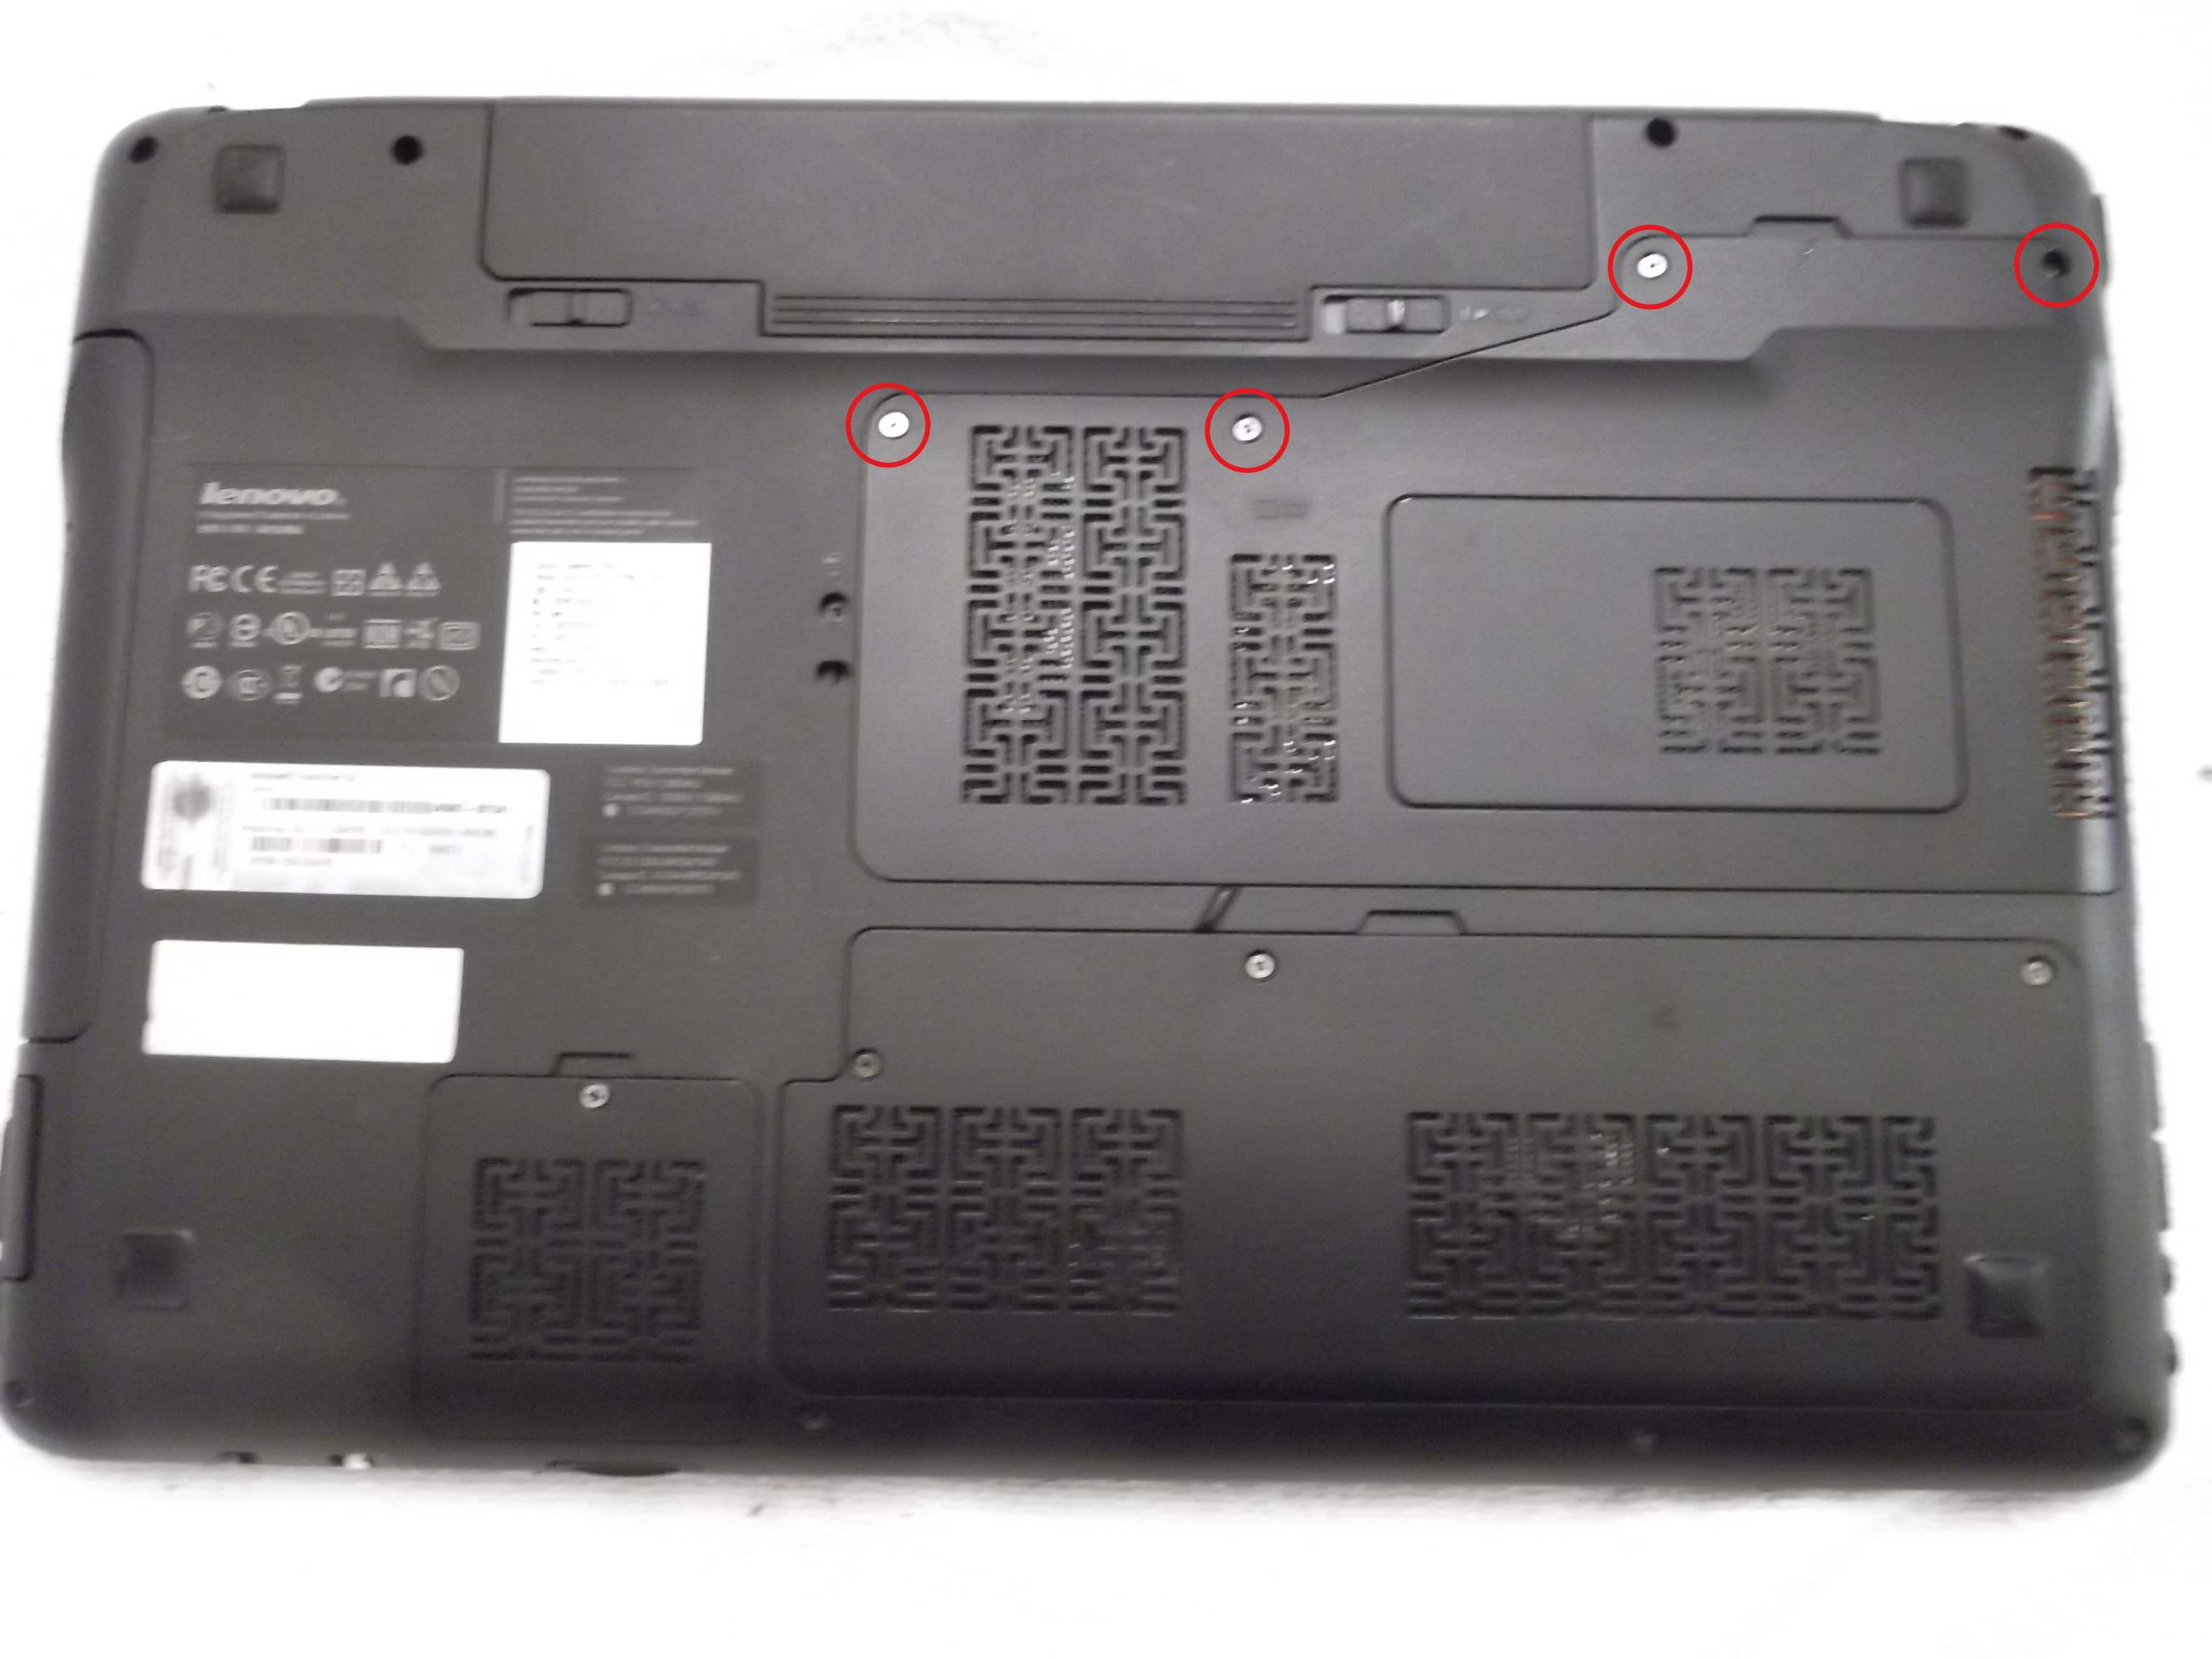 Lenovo IdeaPad Y560 Overheating Solved - Cooling Repair Guide